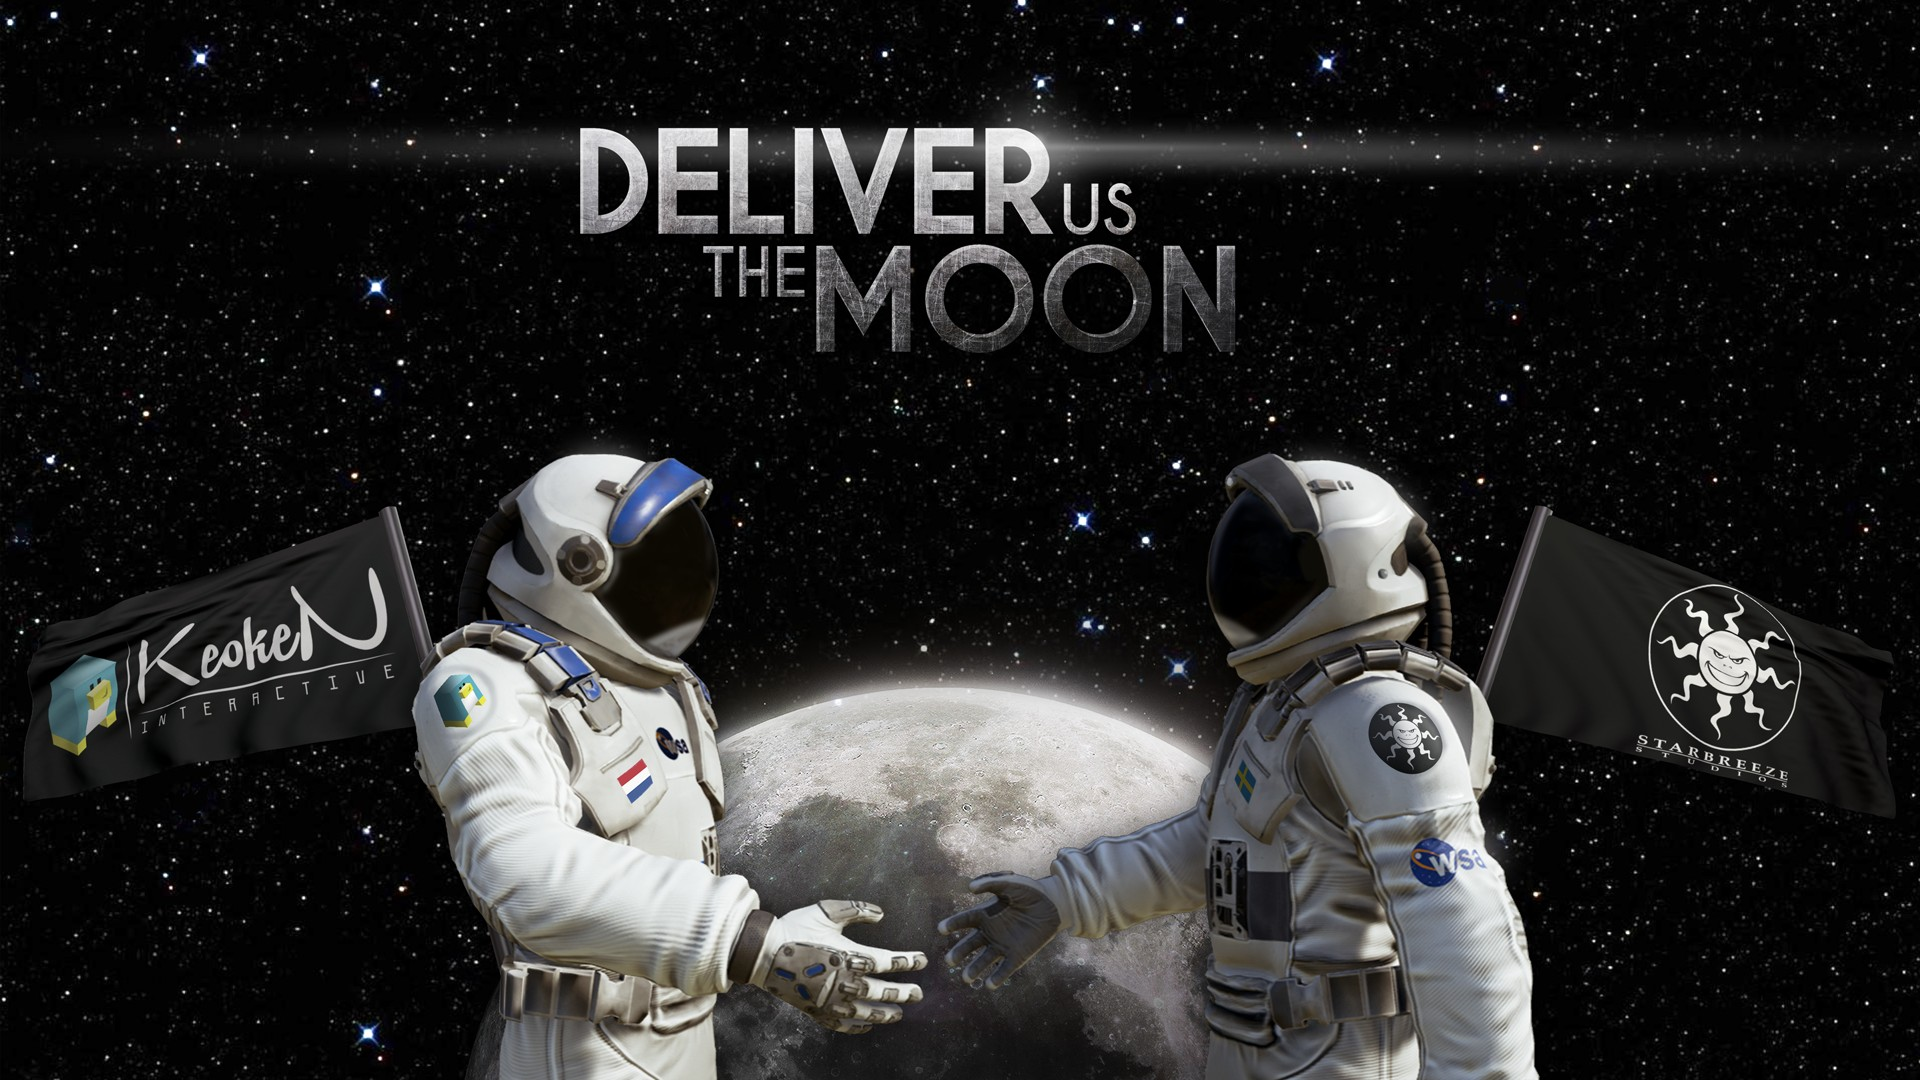 Deliver Us the Moon SBZ Announcement 1920x1080